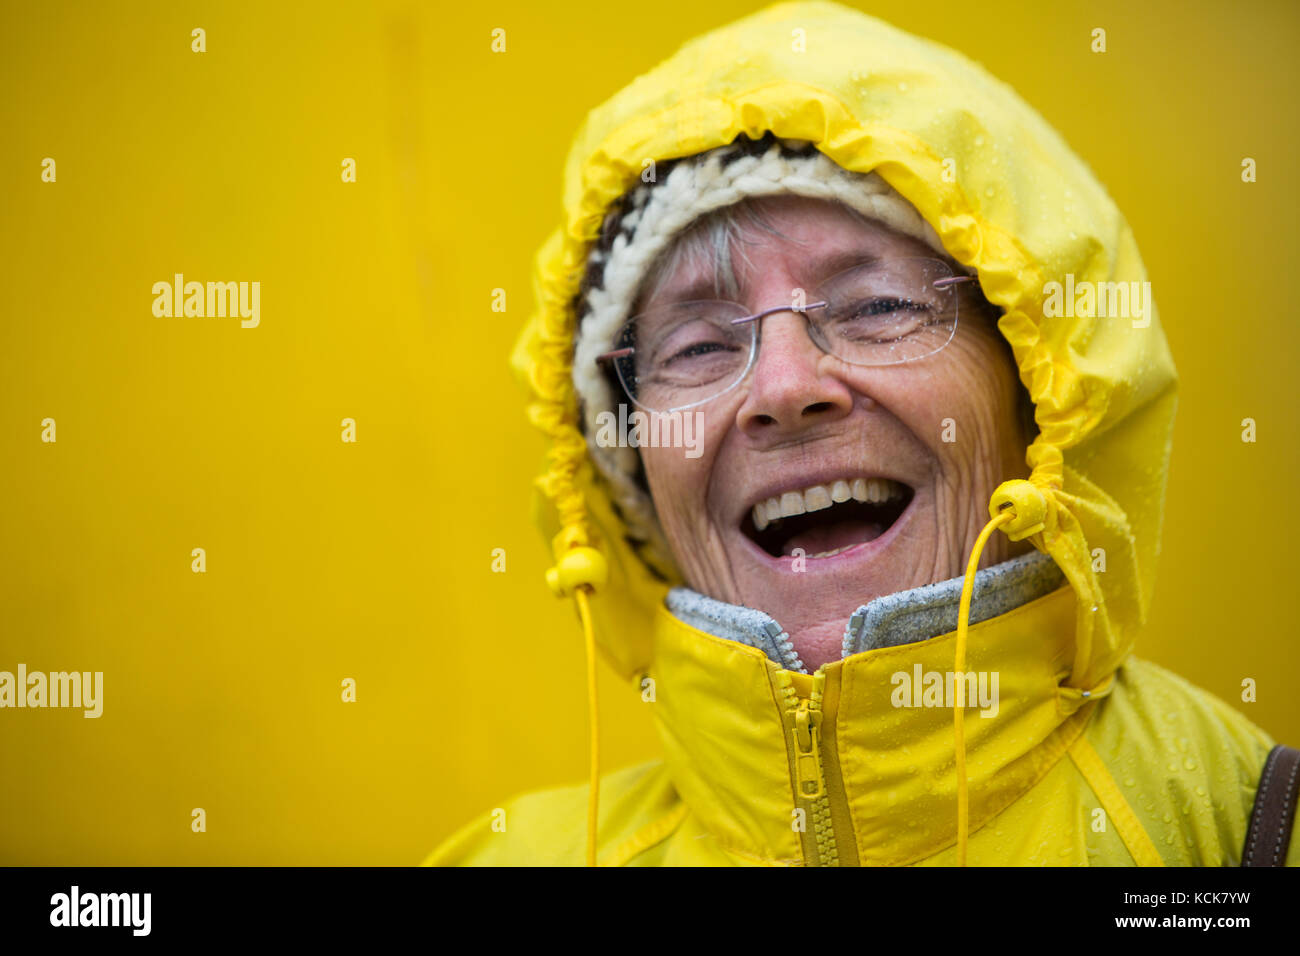 A happy, laughing senior citizen dressed up in her yellow rain slicker enjoys the stormy weather while aboard the - Stock Image